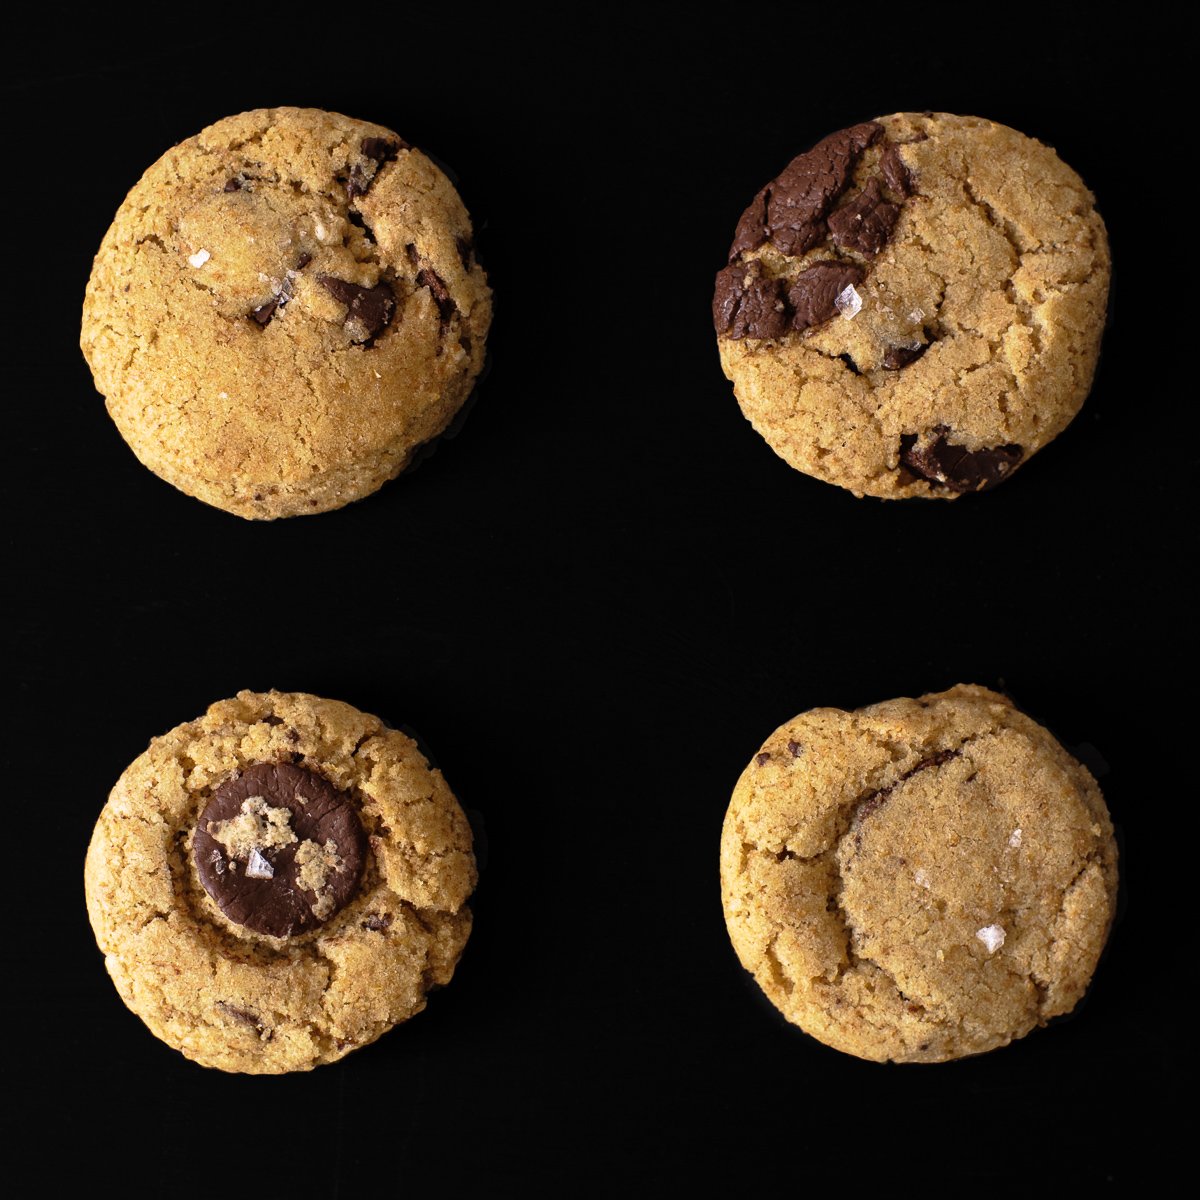 vegan-chocolate-chip.jpg